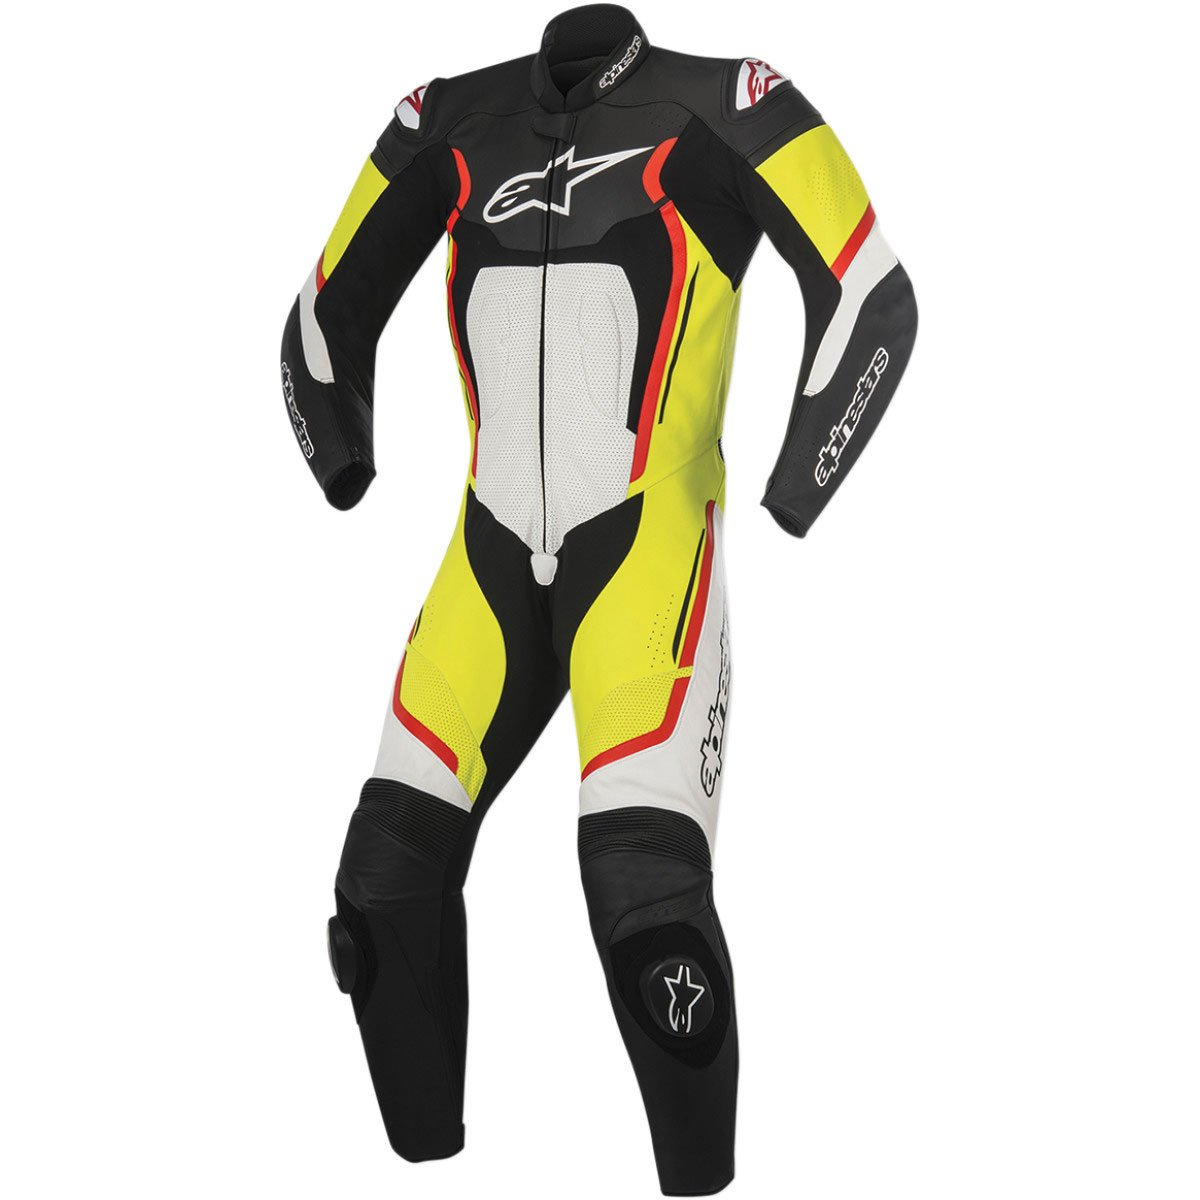 Alpinestars Montegi V2 Men's 1-Piece Street Motorcycle Race Suits - Black/White/Yellow/Red / 50